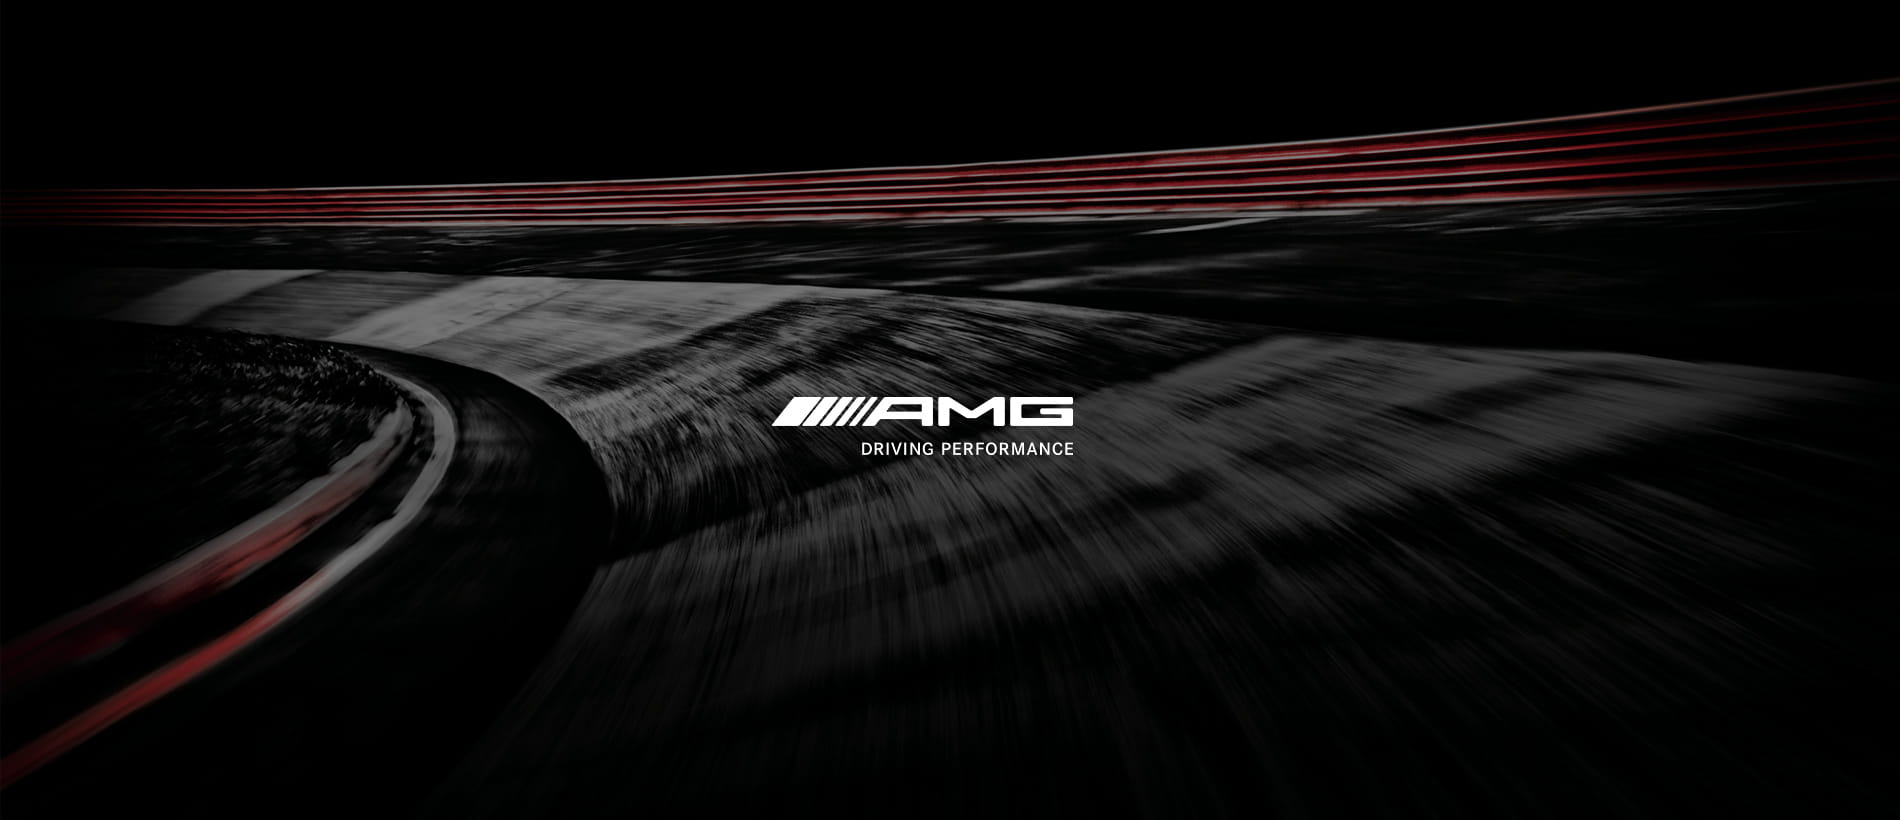 Mercedes-AMG Website